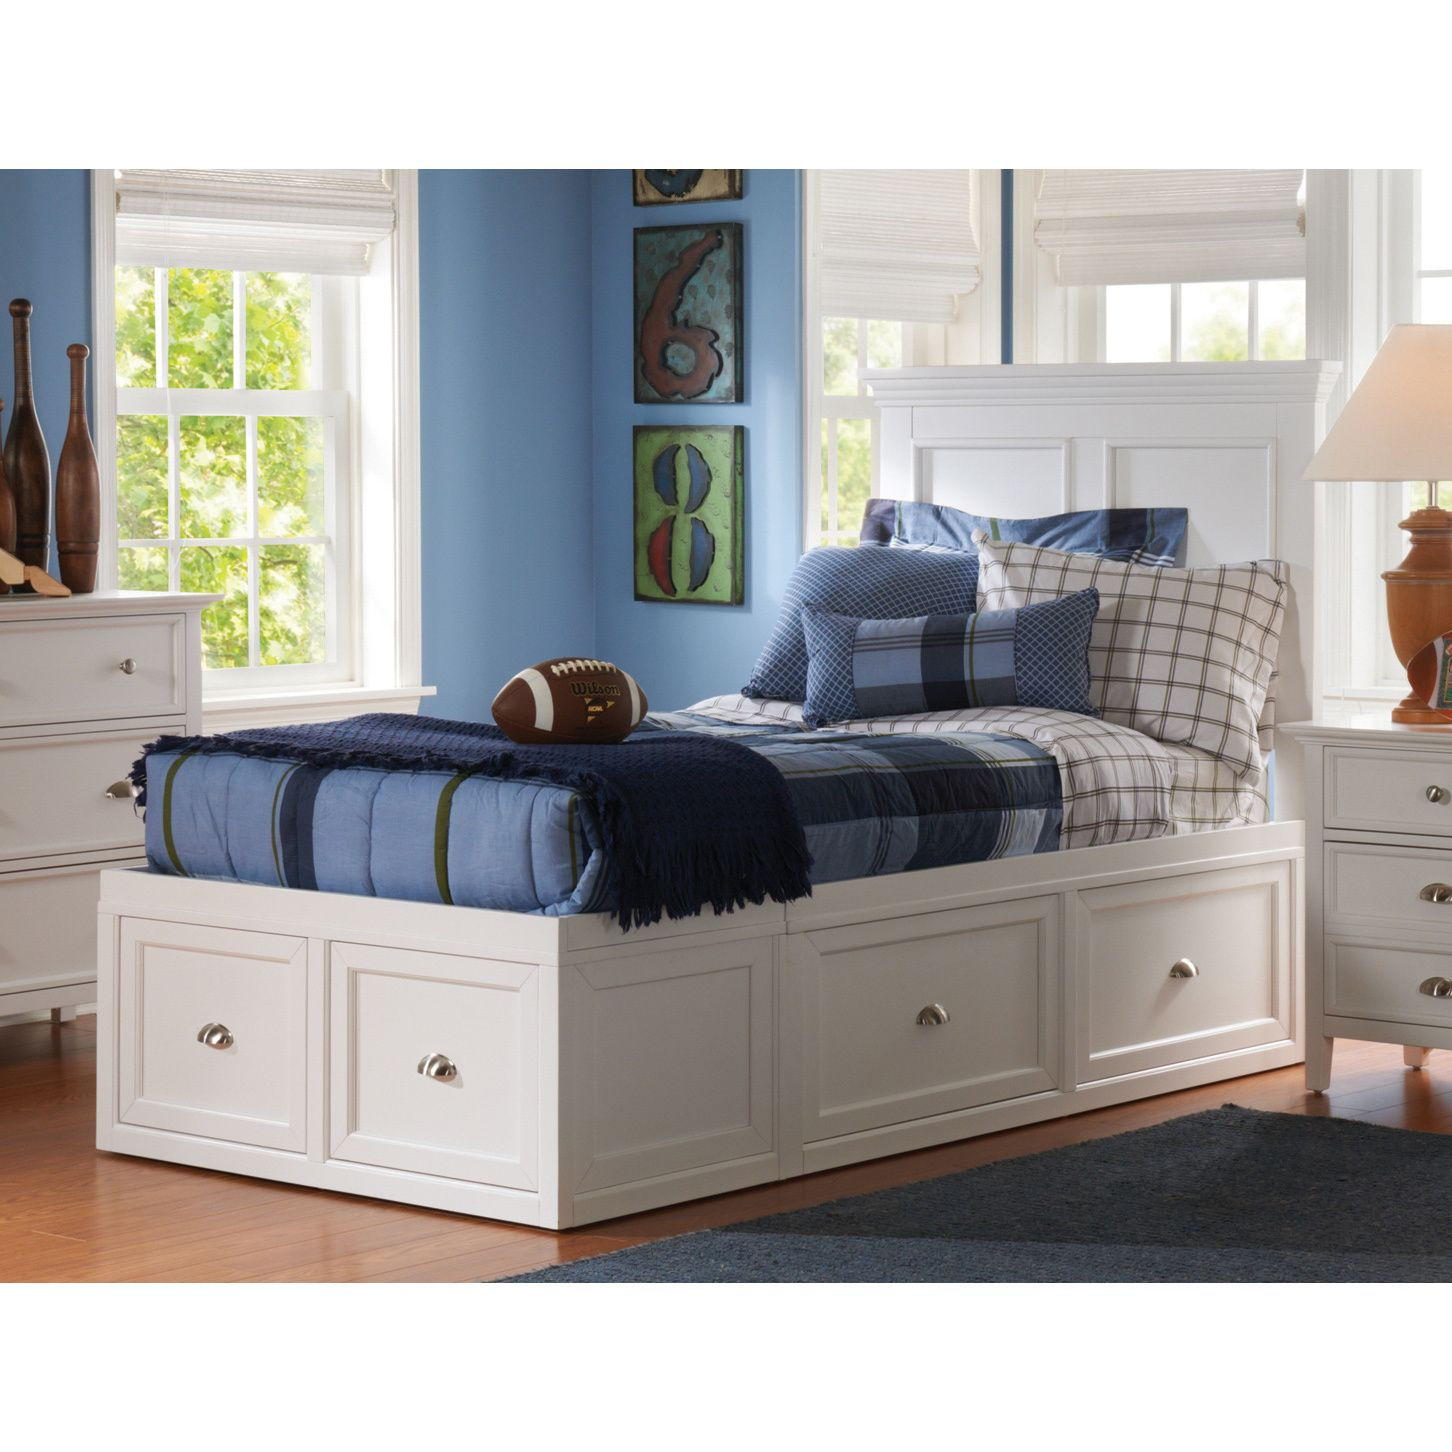 494d7c4e79e3 From The Abbott Collection. Contemporary style bedroom group. Made in a  White finish. Also stocked in a Cherry finish